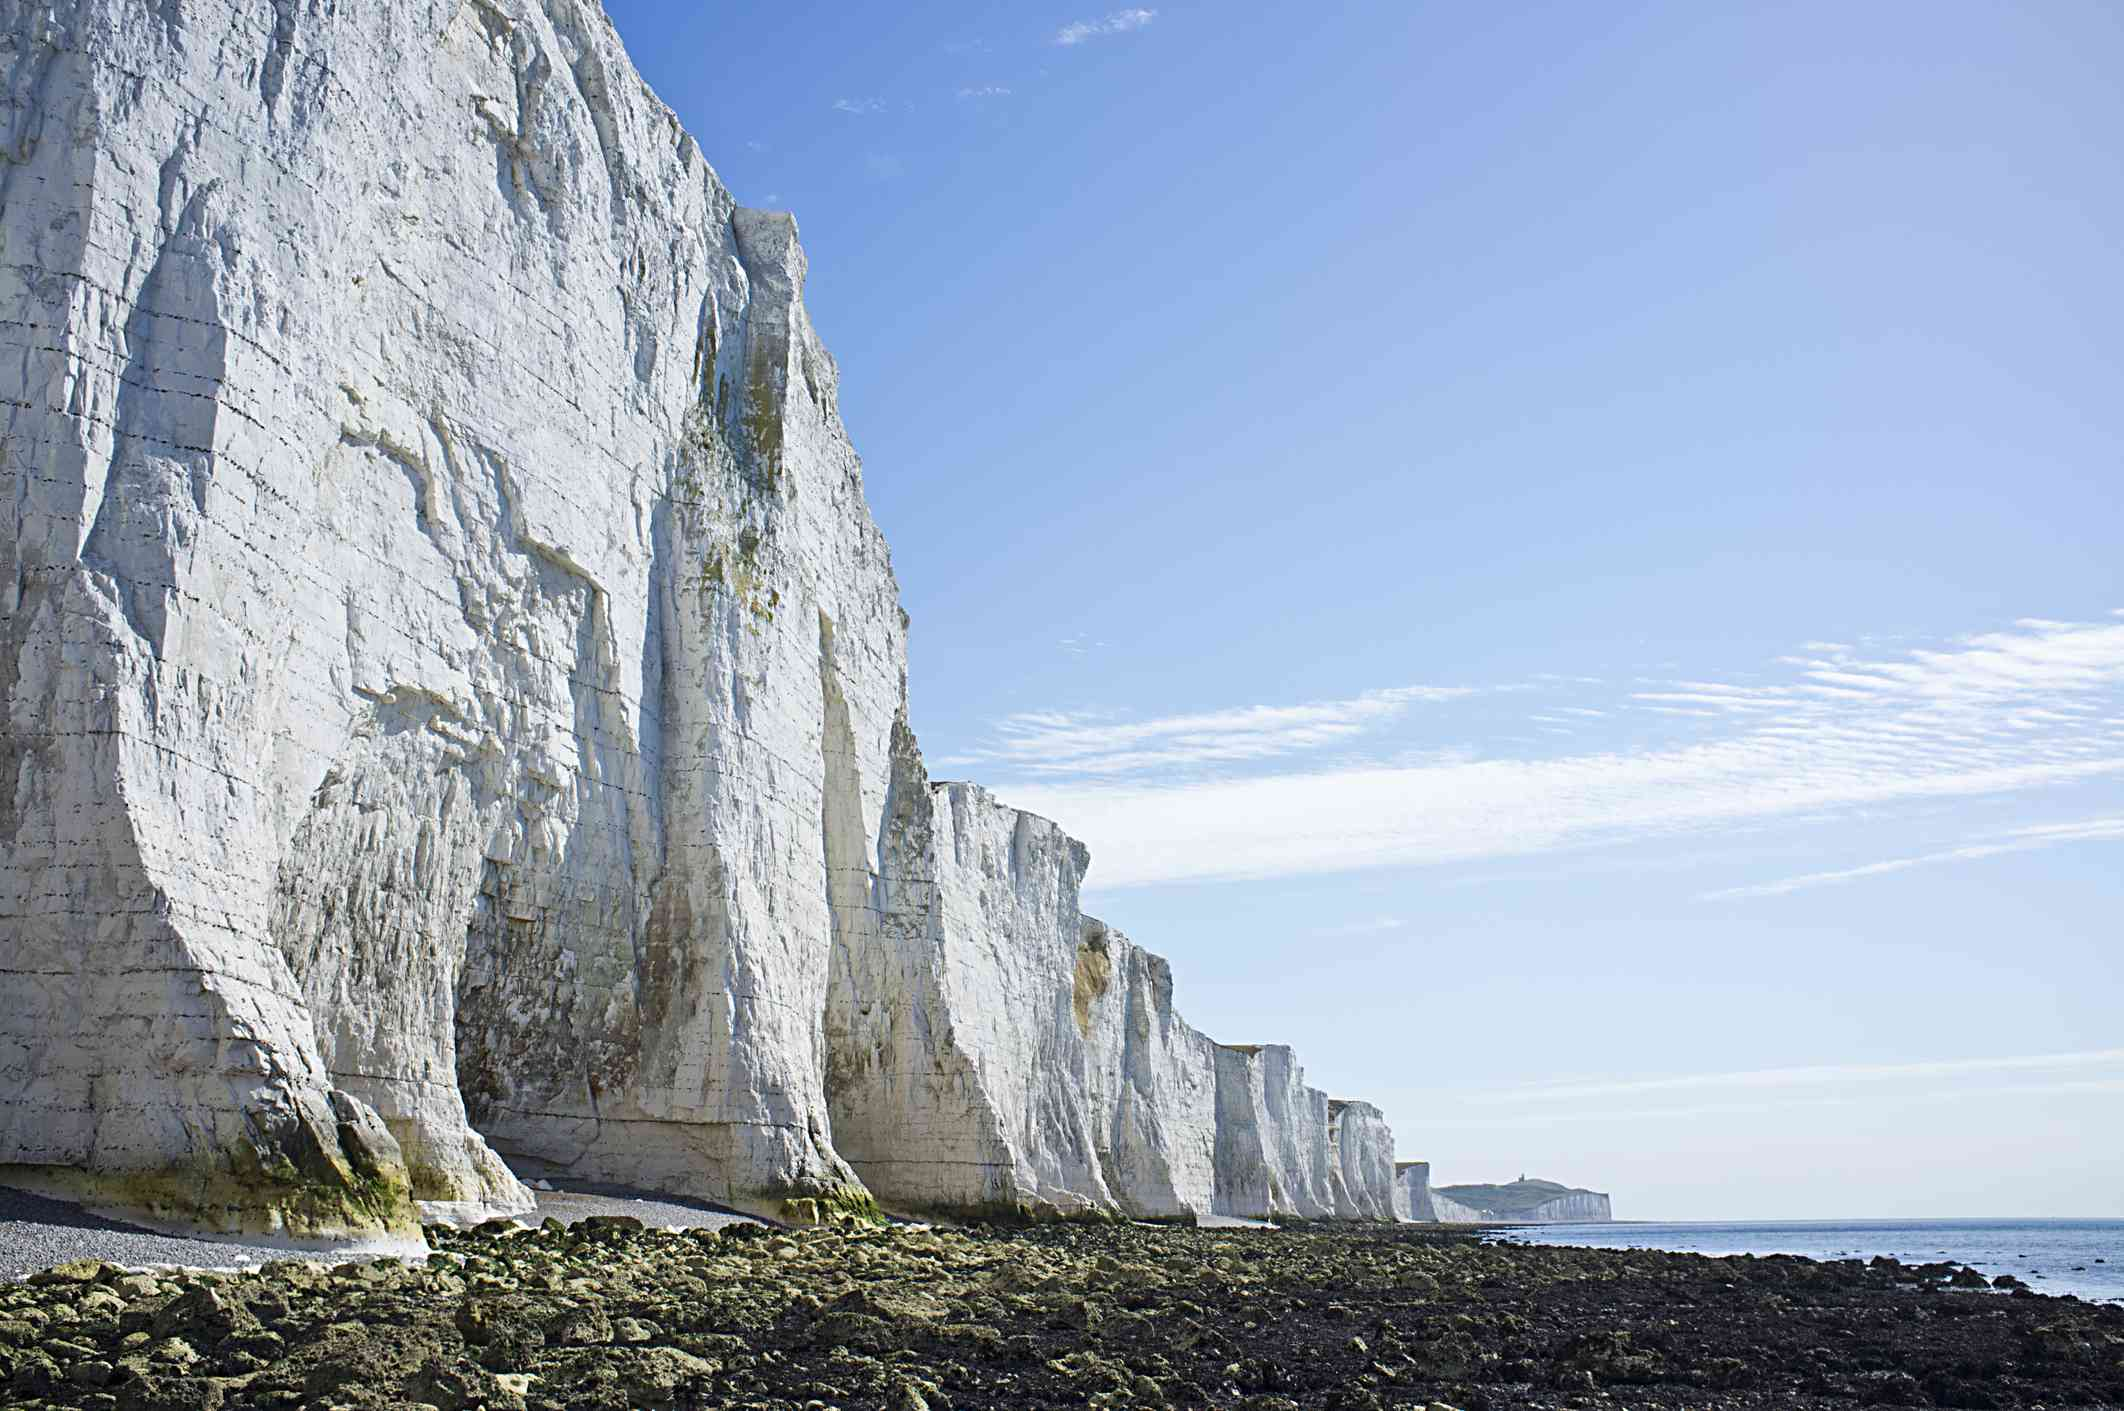 The chalky White Cliffs of Dover rise above the waters on the English coast